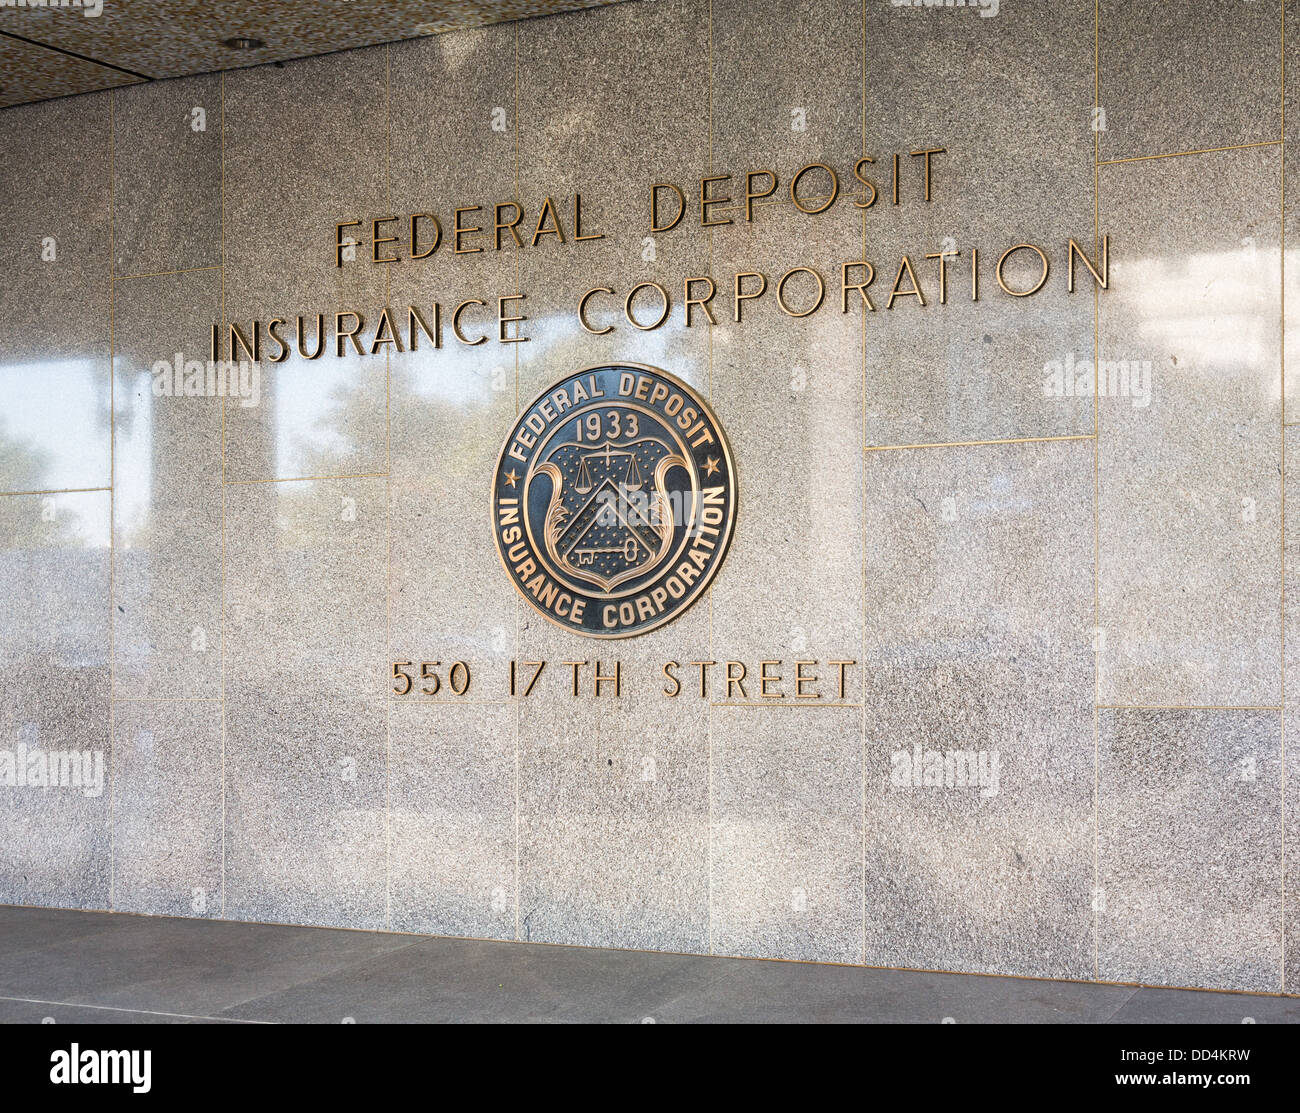 Seal of the Federal Deposit Insurance Corporation (FDIC) at 17th Street NW, Washington DC - Stock Image